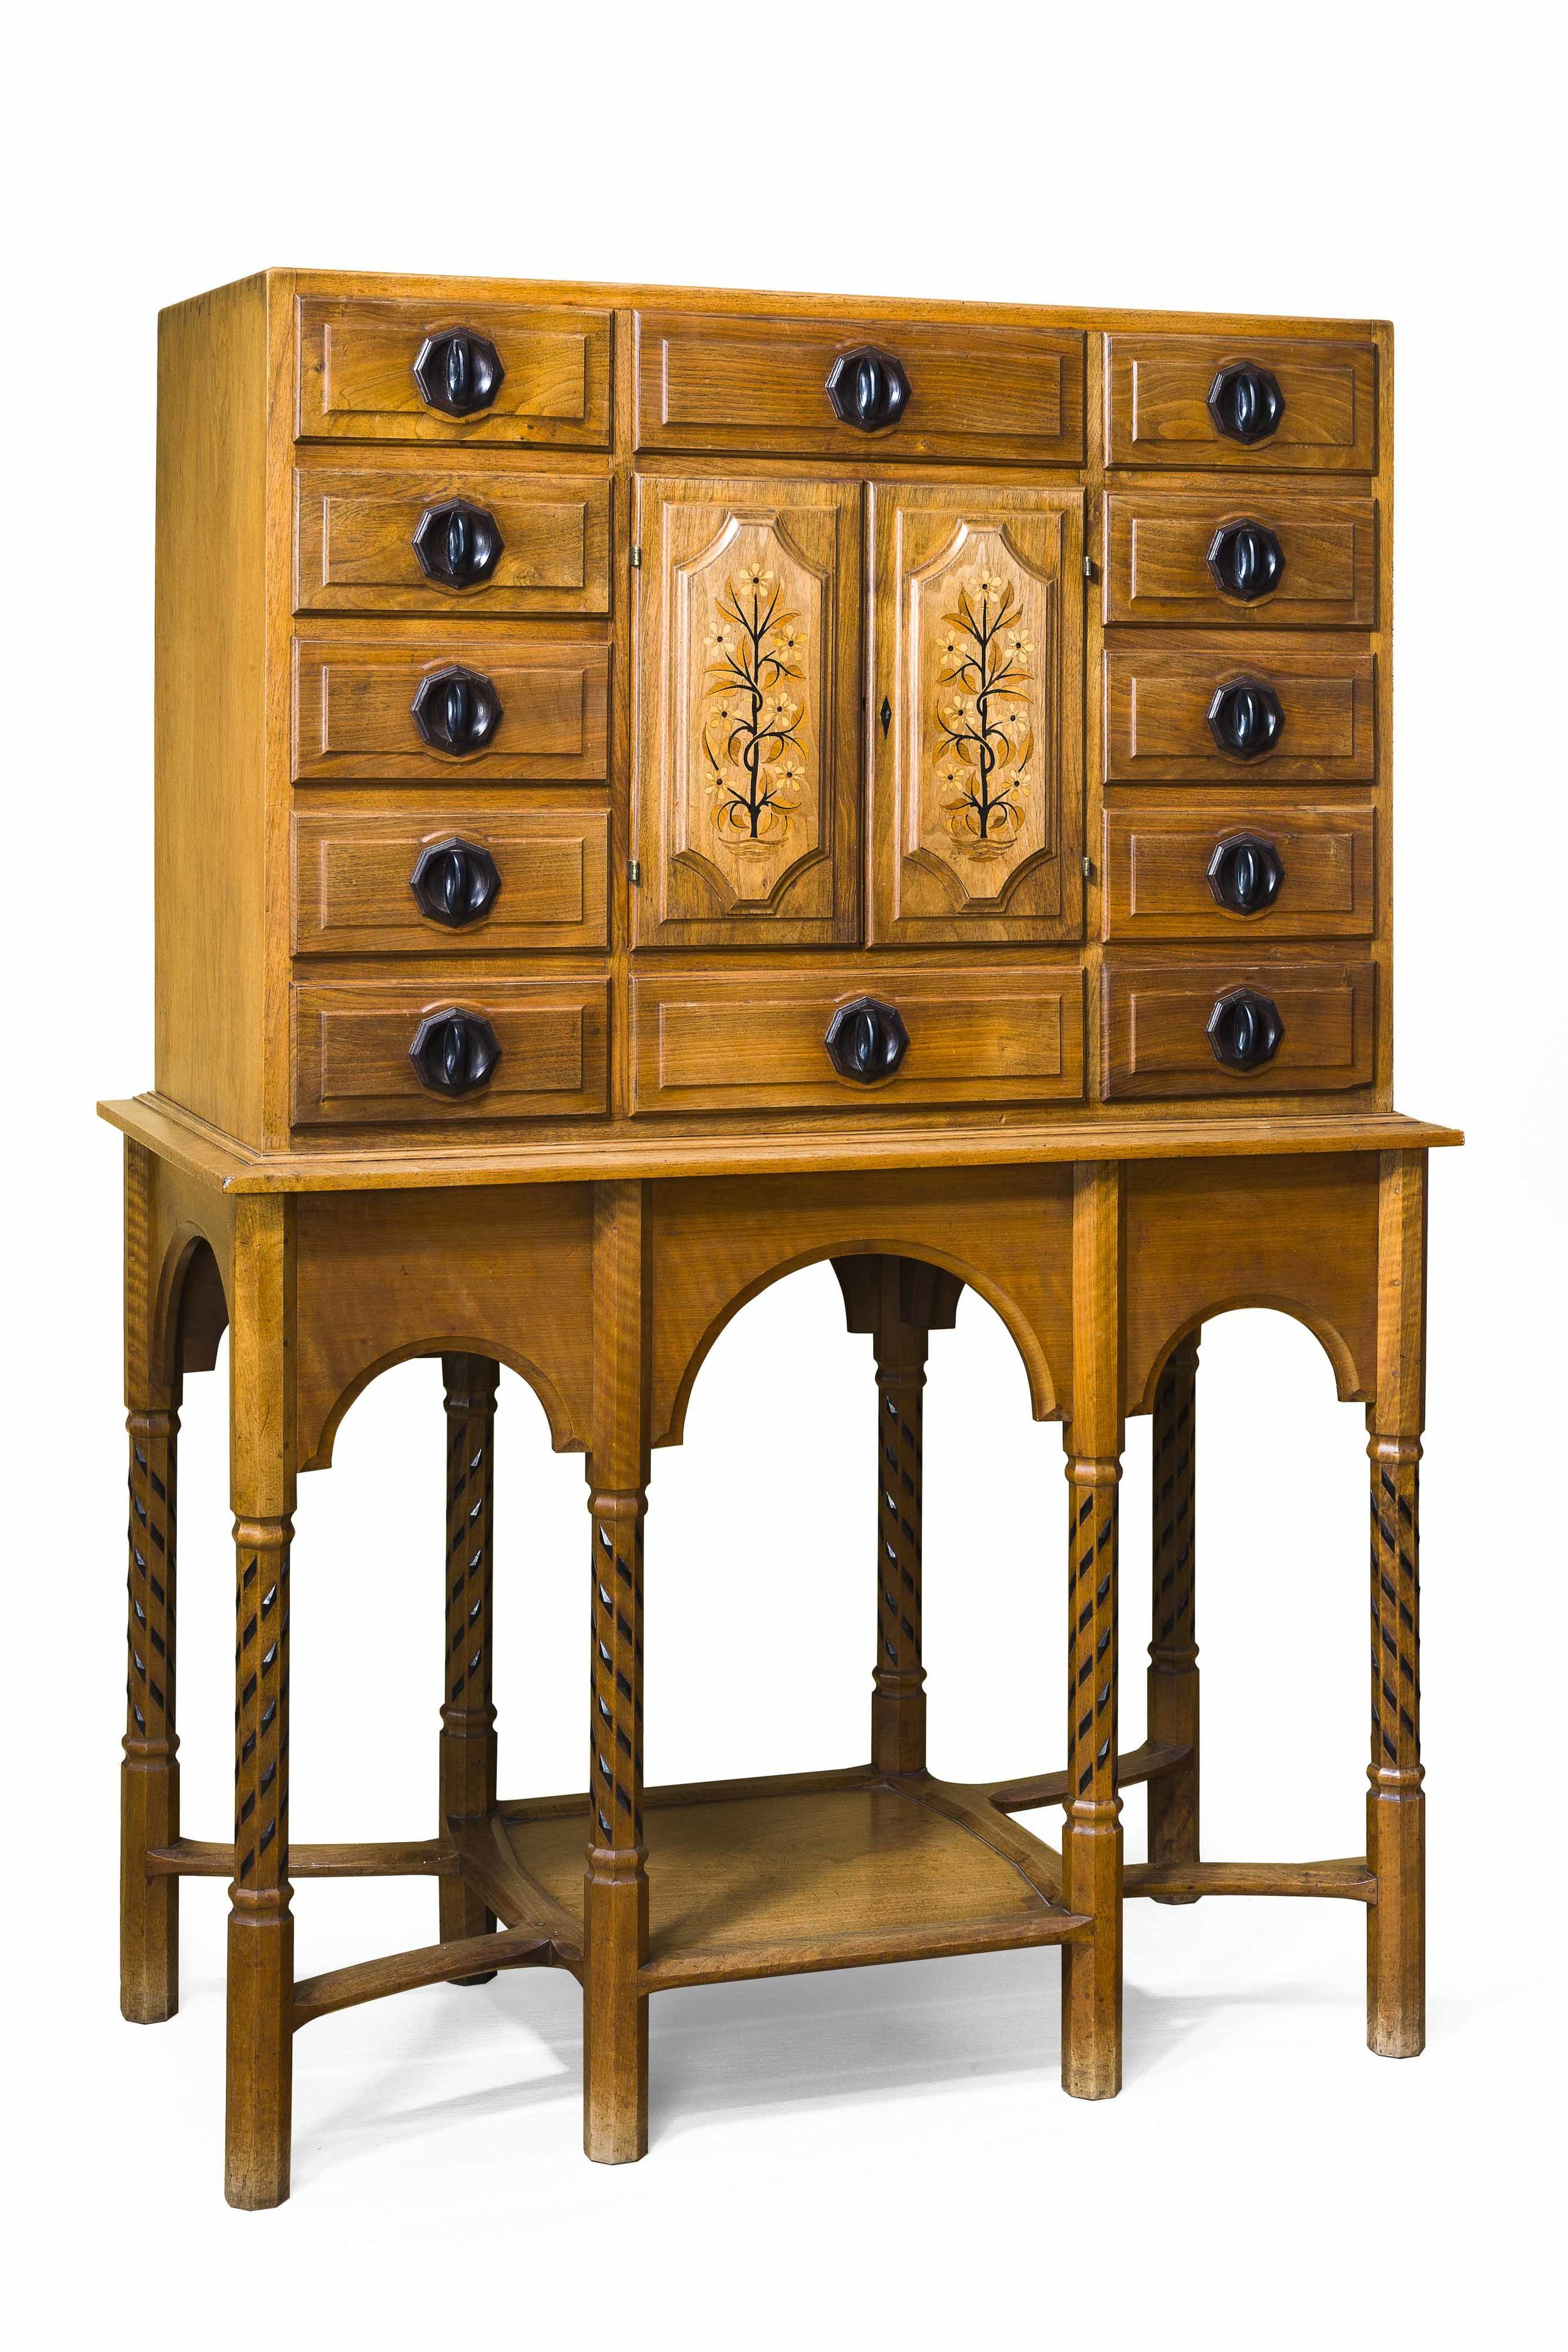 Paris Cabinet designed by G. Russell, inlaid walnut, 1924.jpg